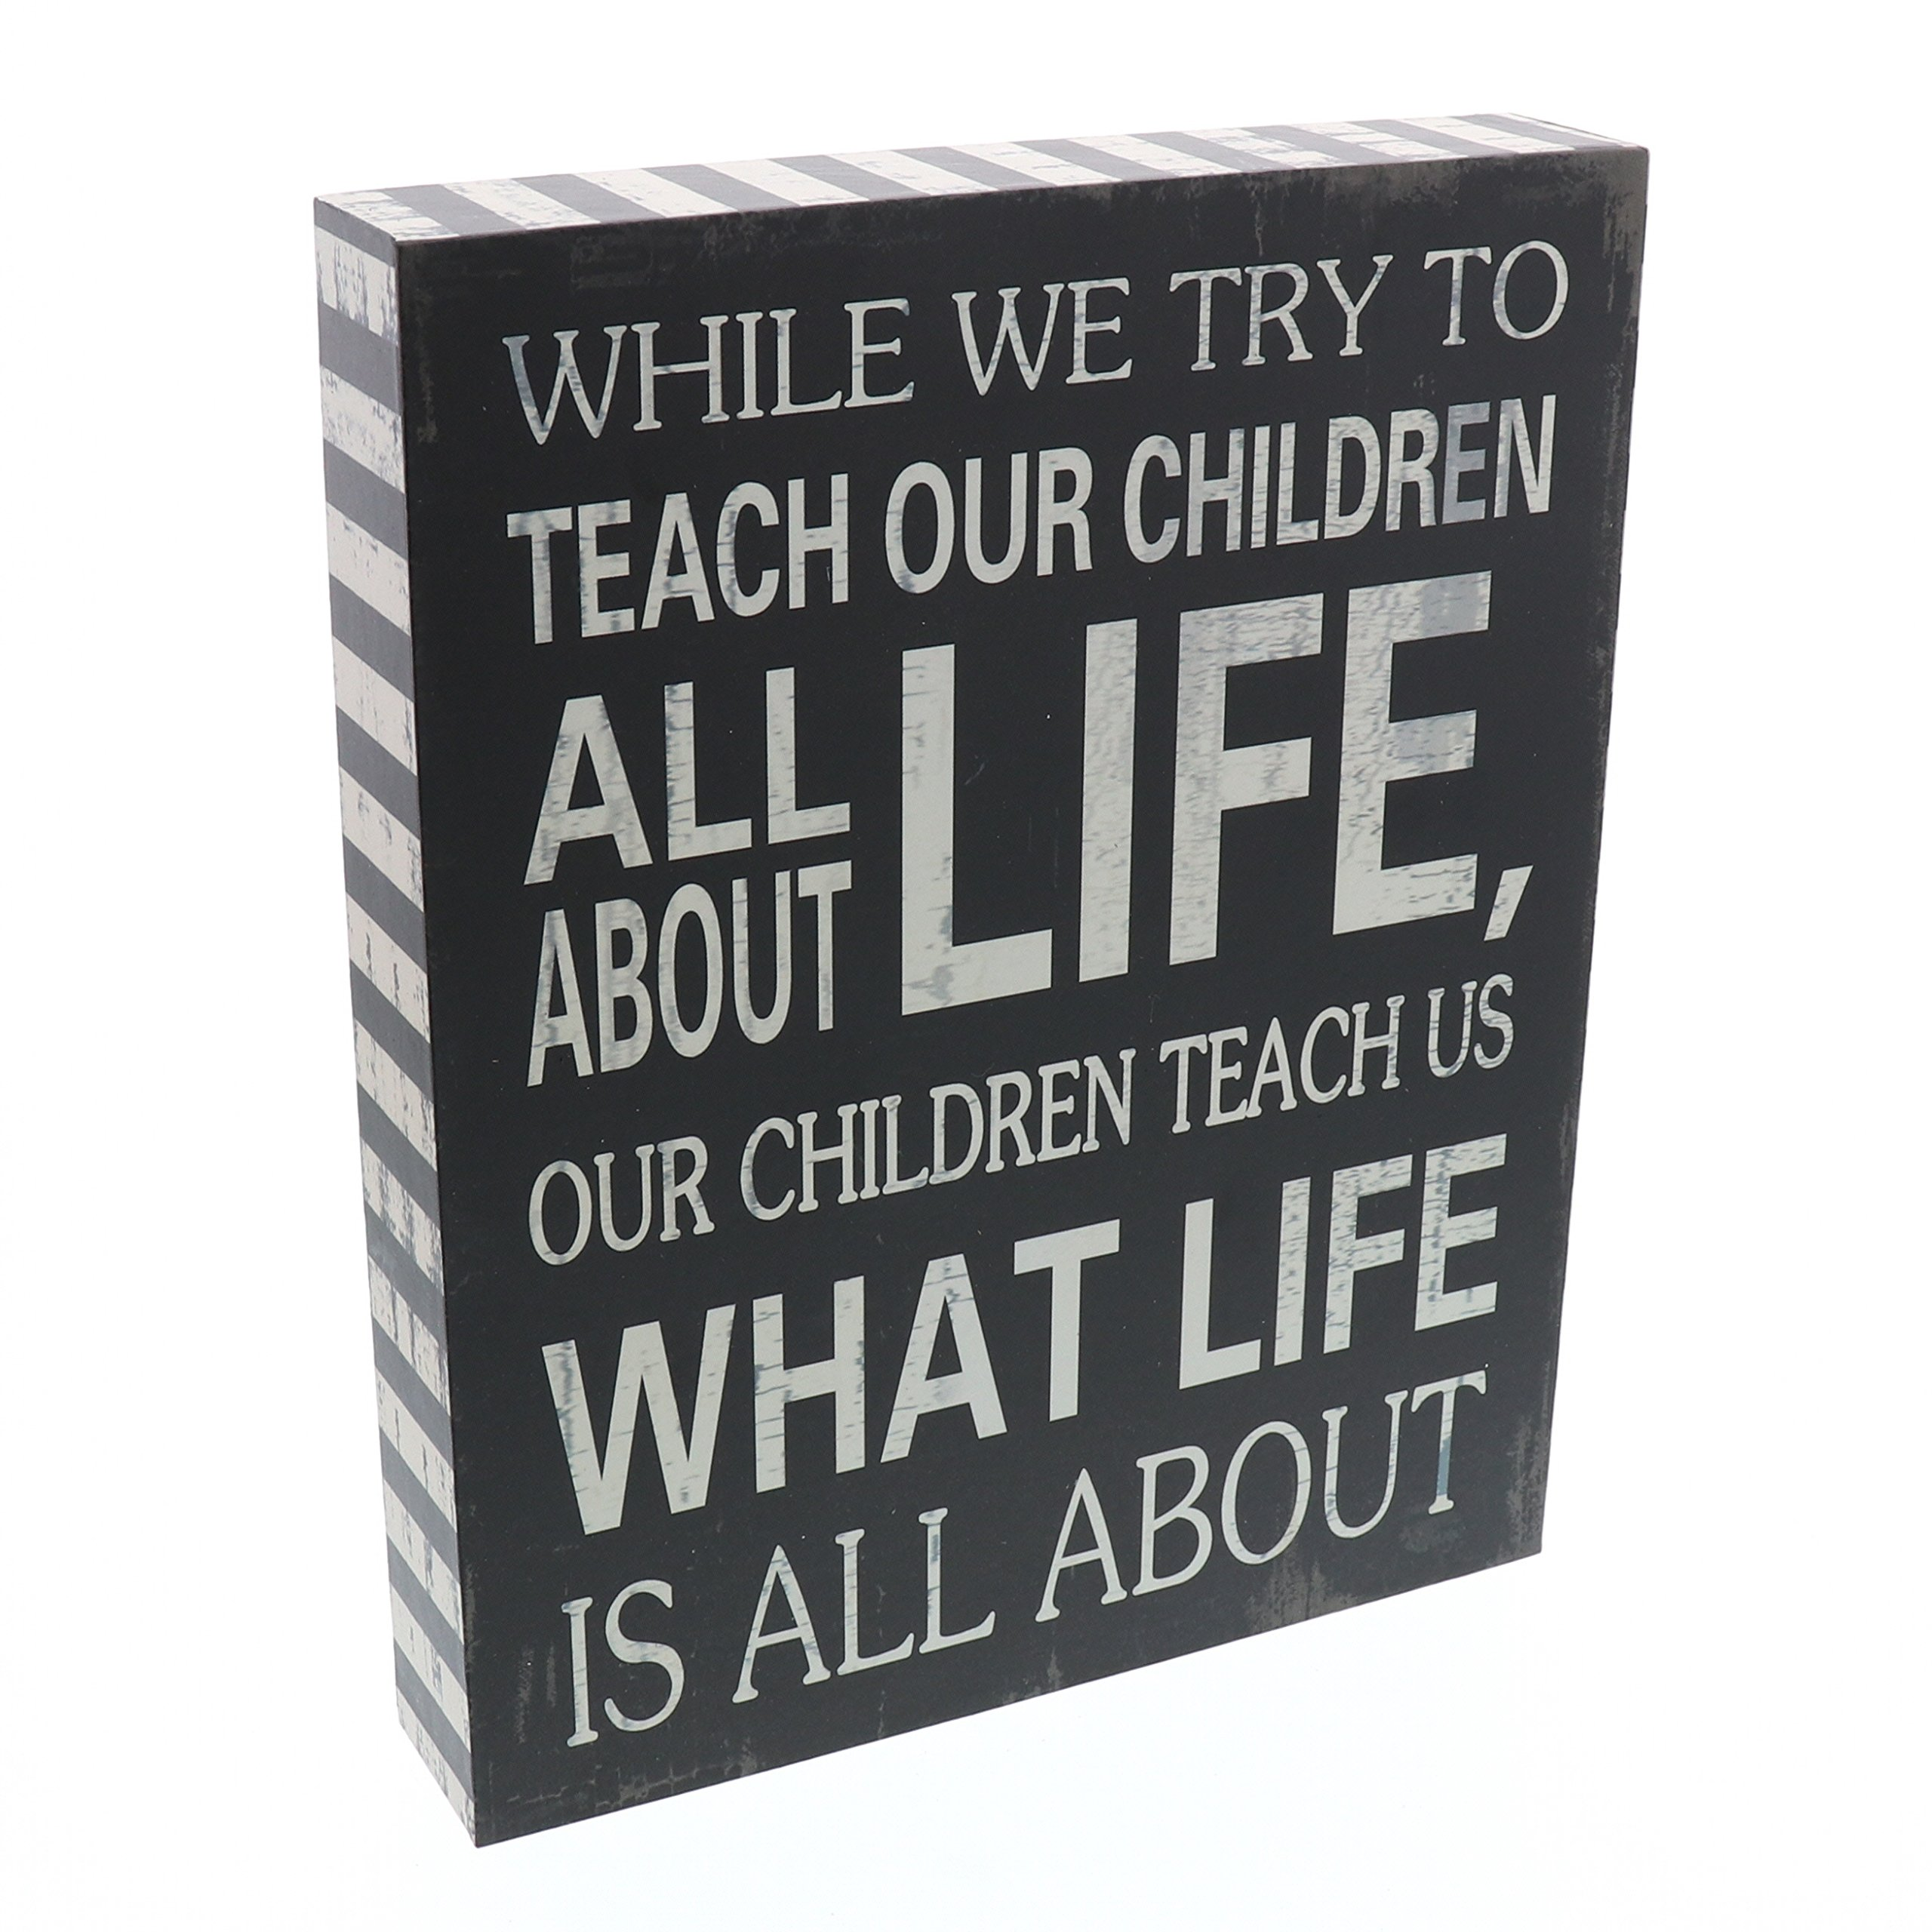 Barnyard Designs Our Children Teach Us What Life Is All About Wooden Box Wall Art Sign, Primitive Country Farmhouse Home Decor Sign With Sayings 10'' x 8''